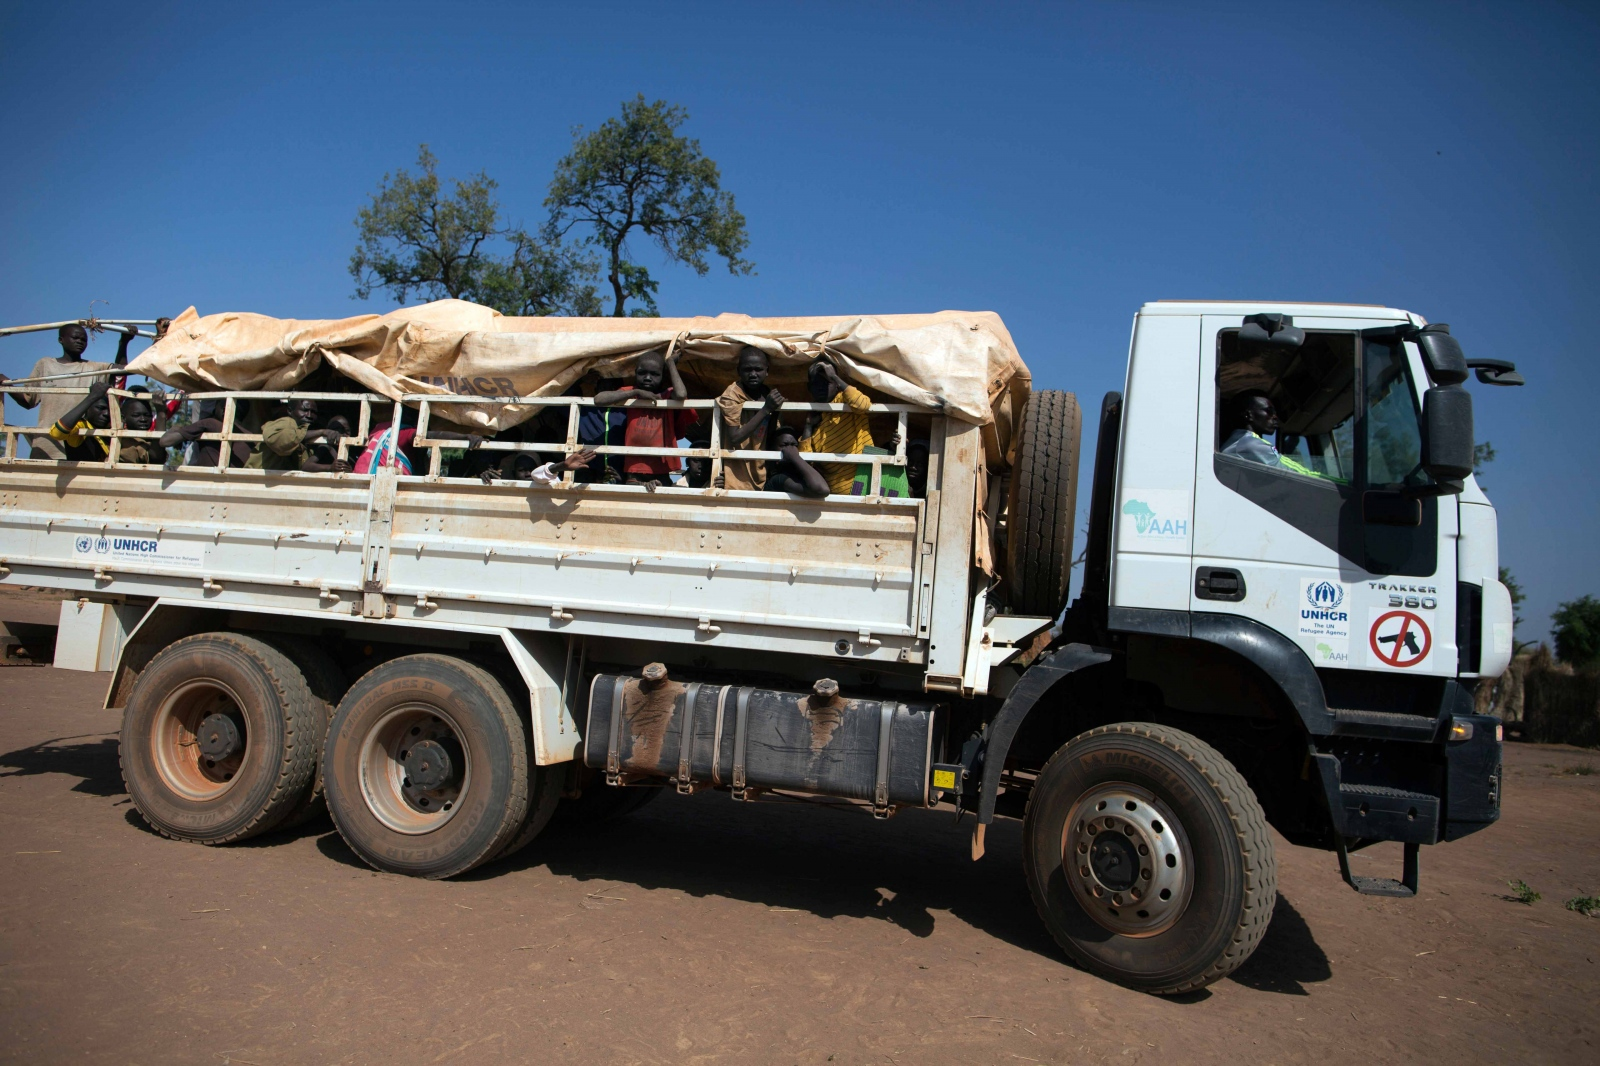 Art and Documentary Photography - Loading Refugees_17.JPG